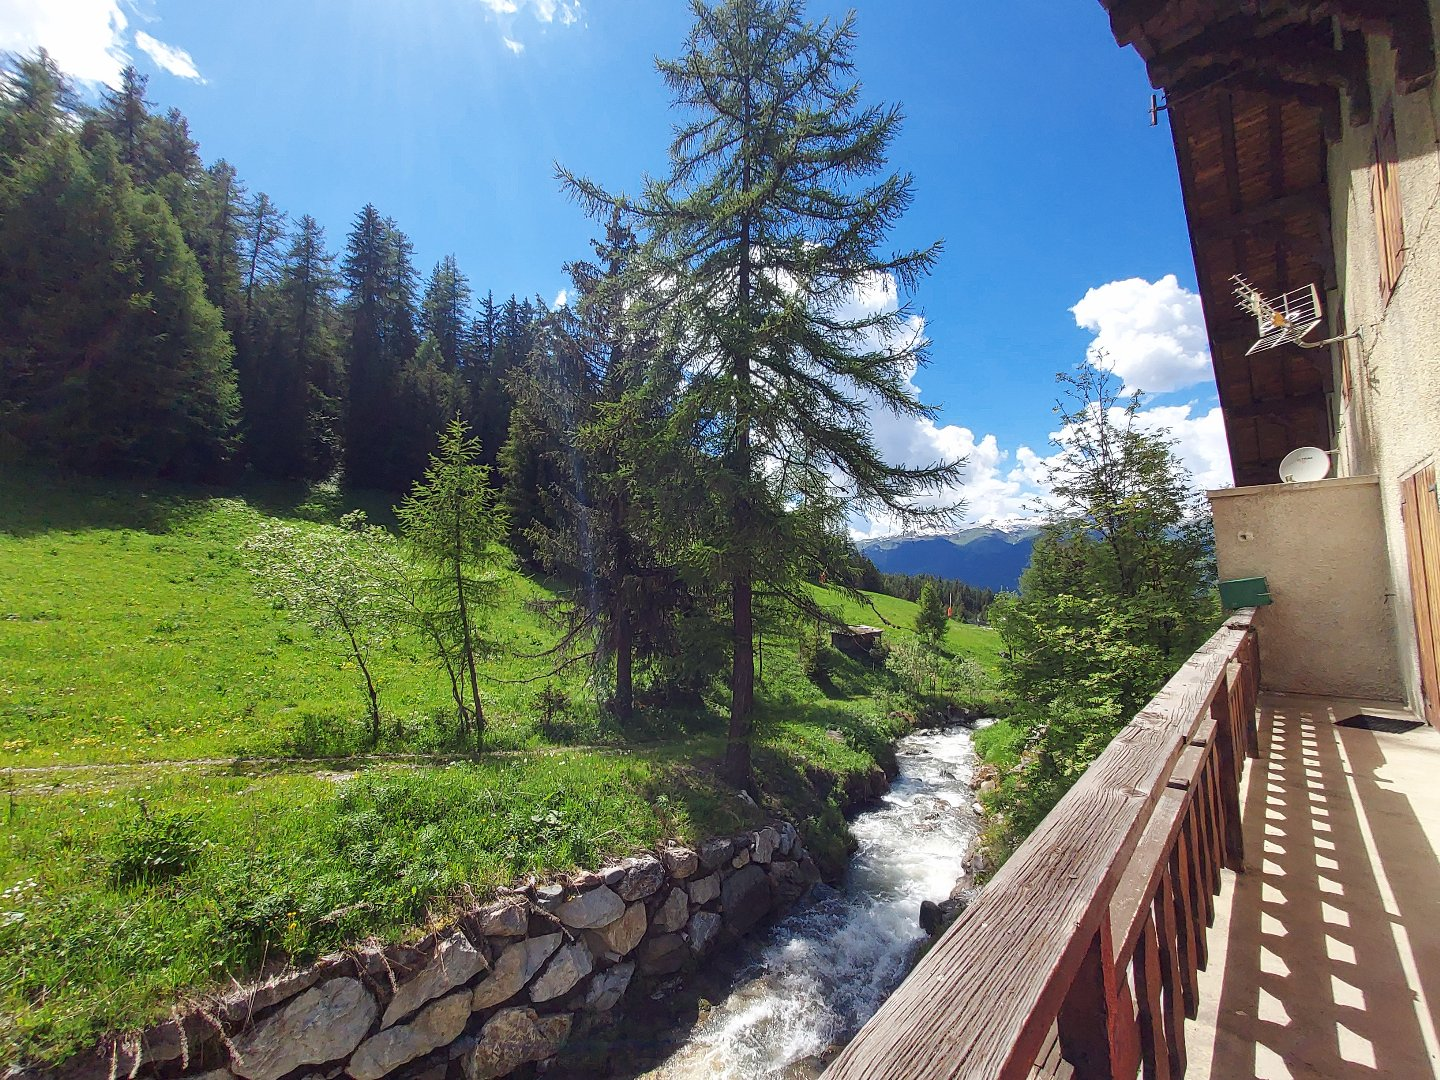 LA ROCHE - Chalet with a lot of character, close to the slopes, with sauna and hammam! Accommodation in La Plagne